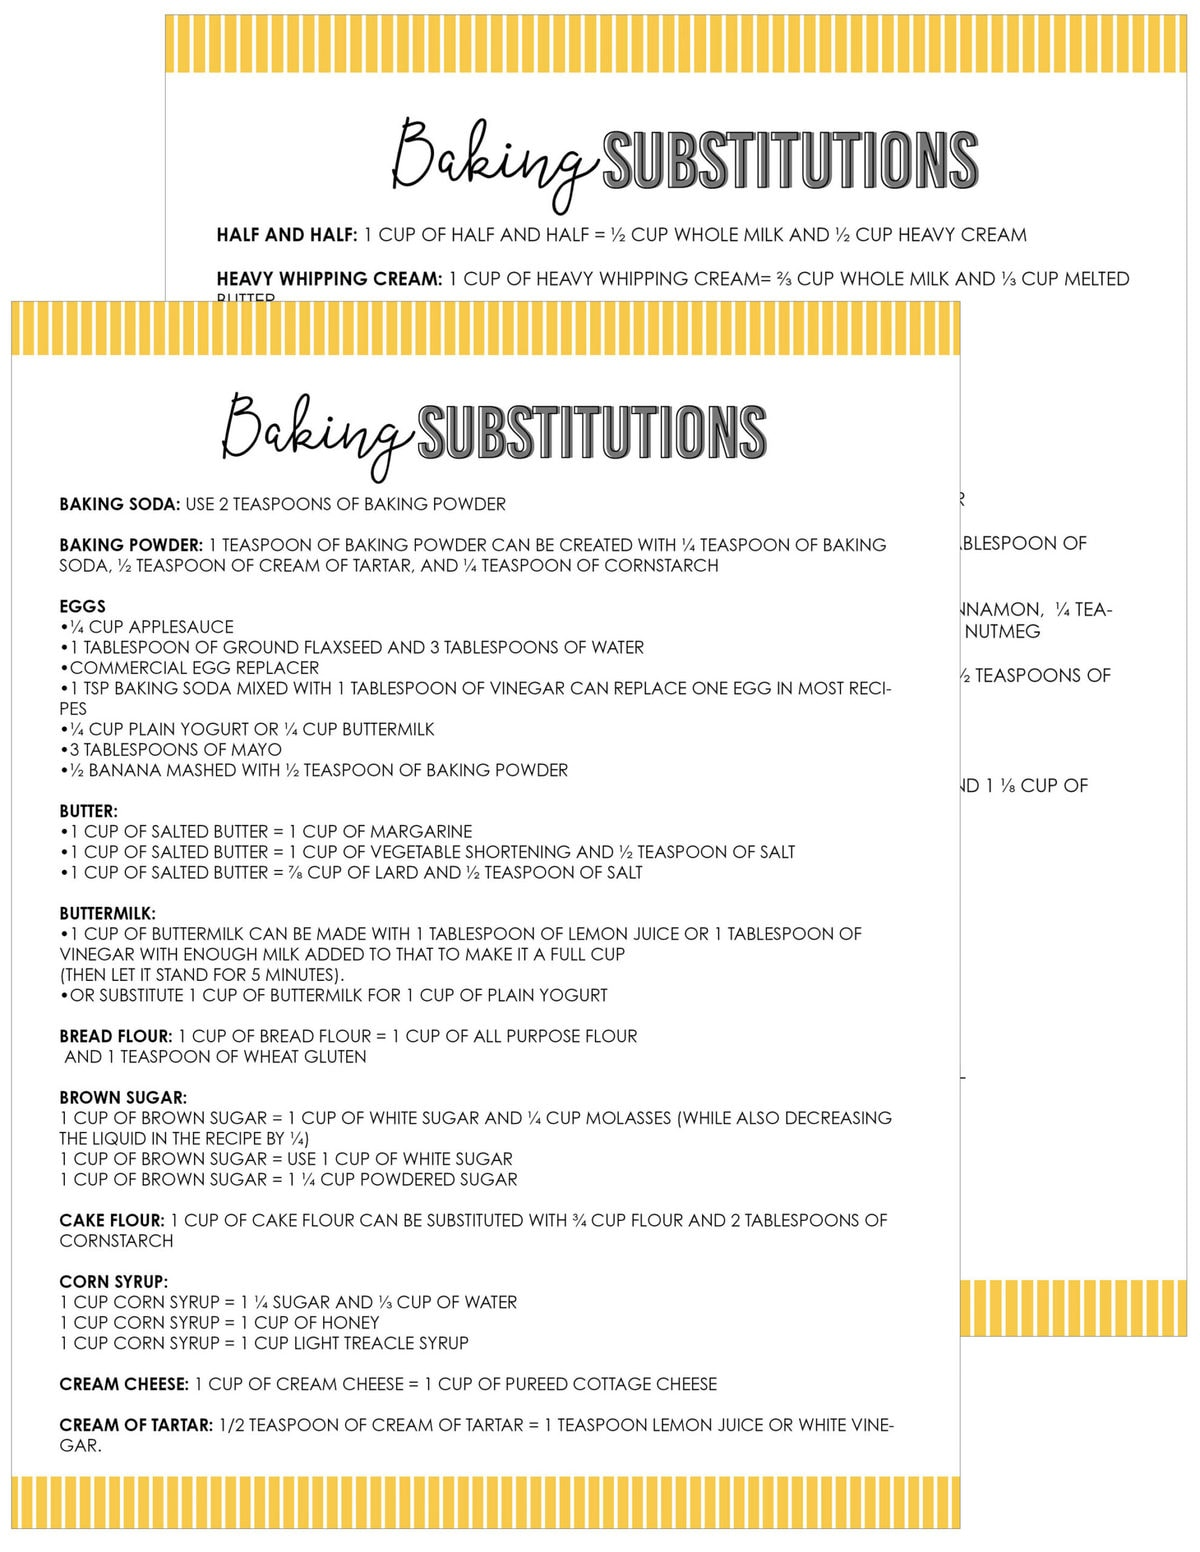 Baking substitutions printable